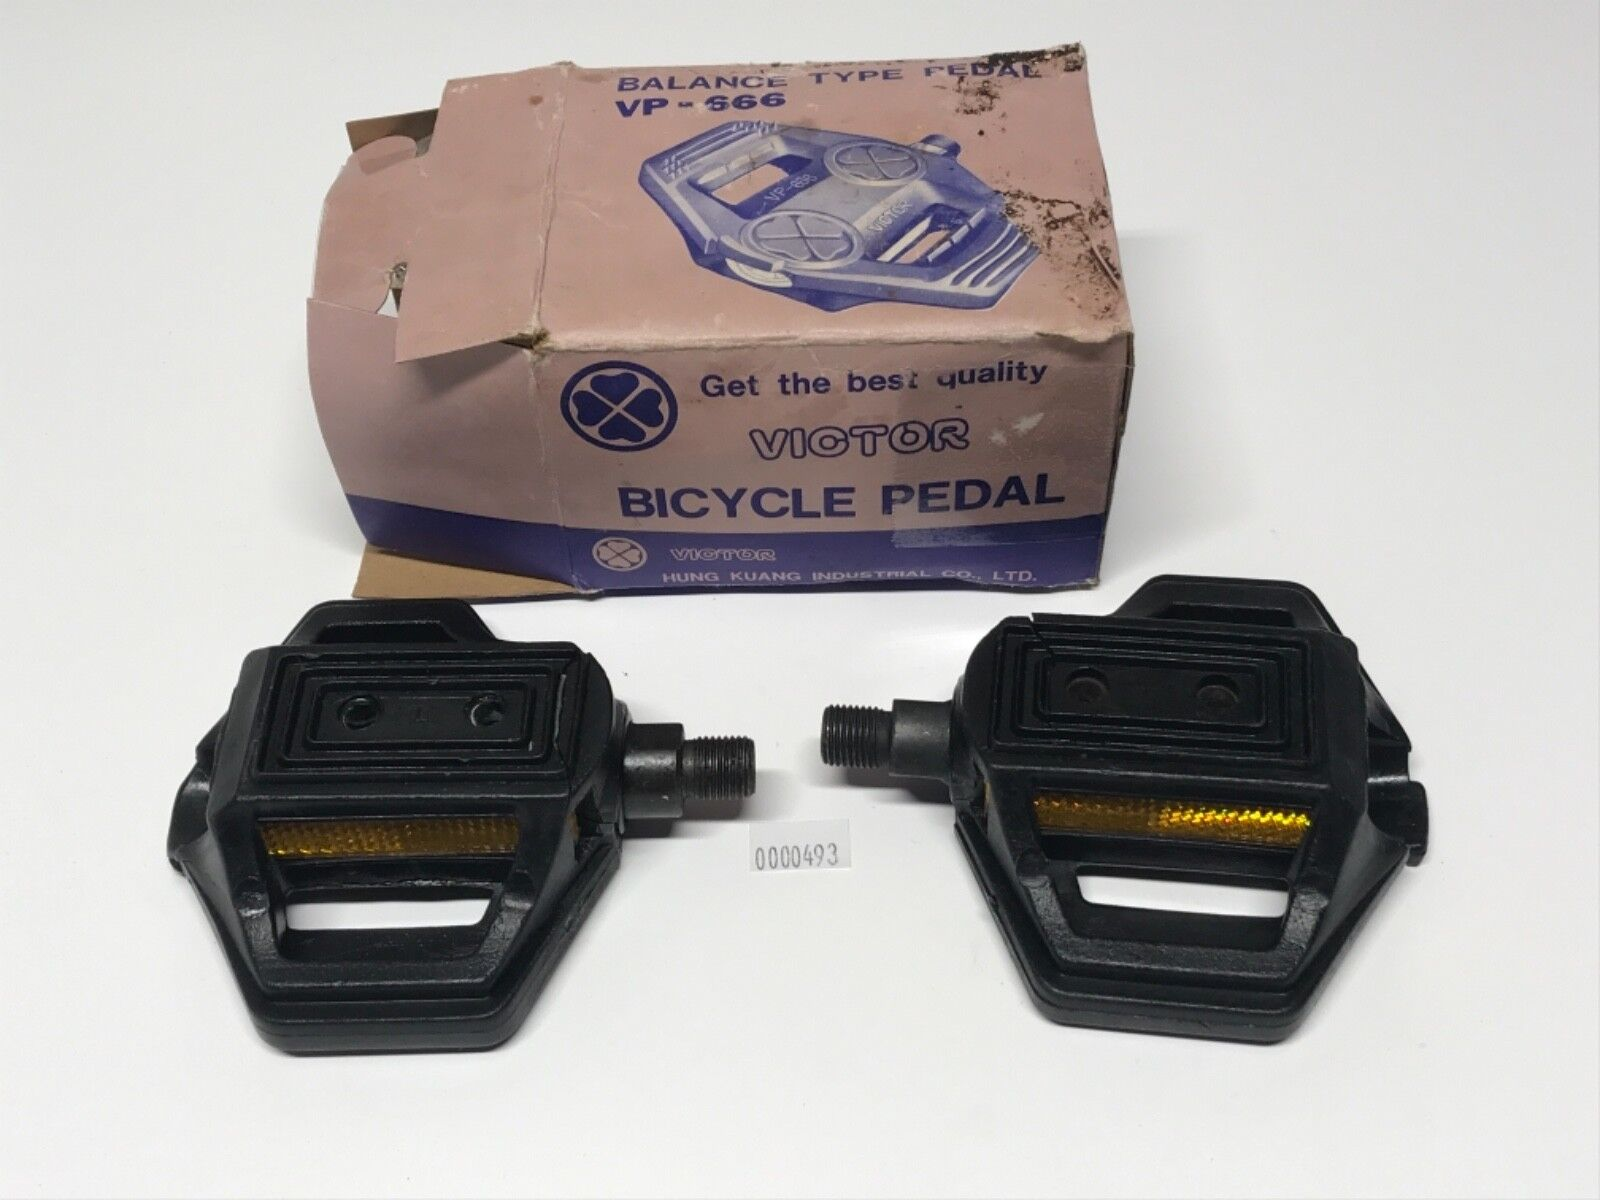 victor bicycle pedals balance type pedal 666